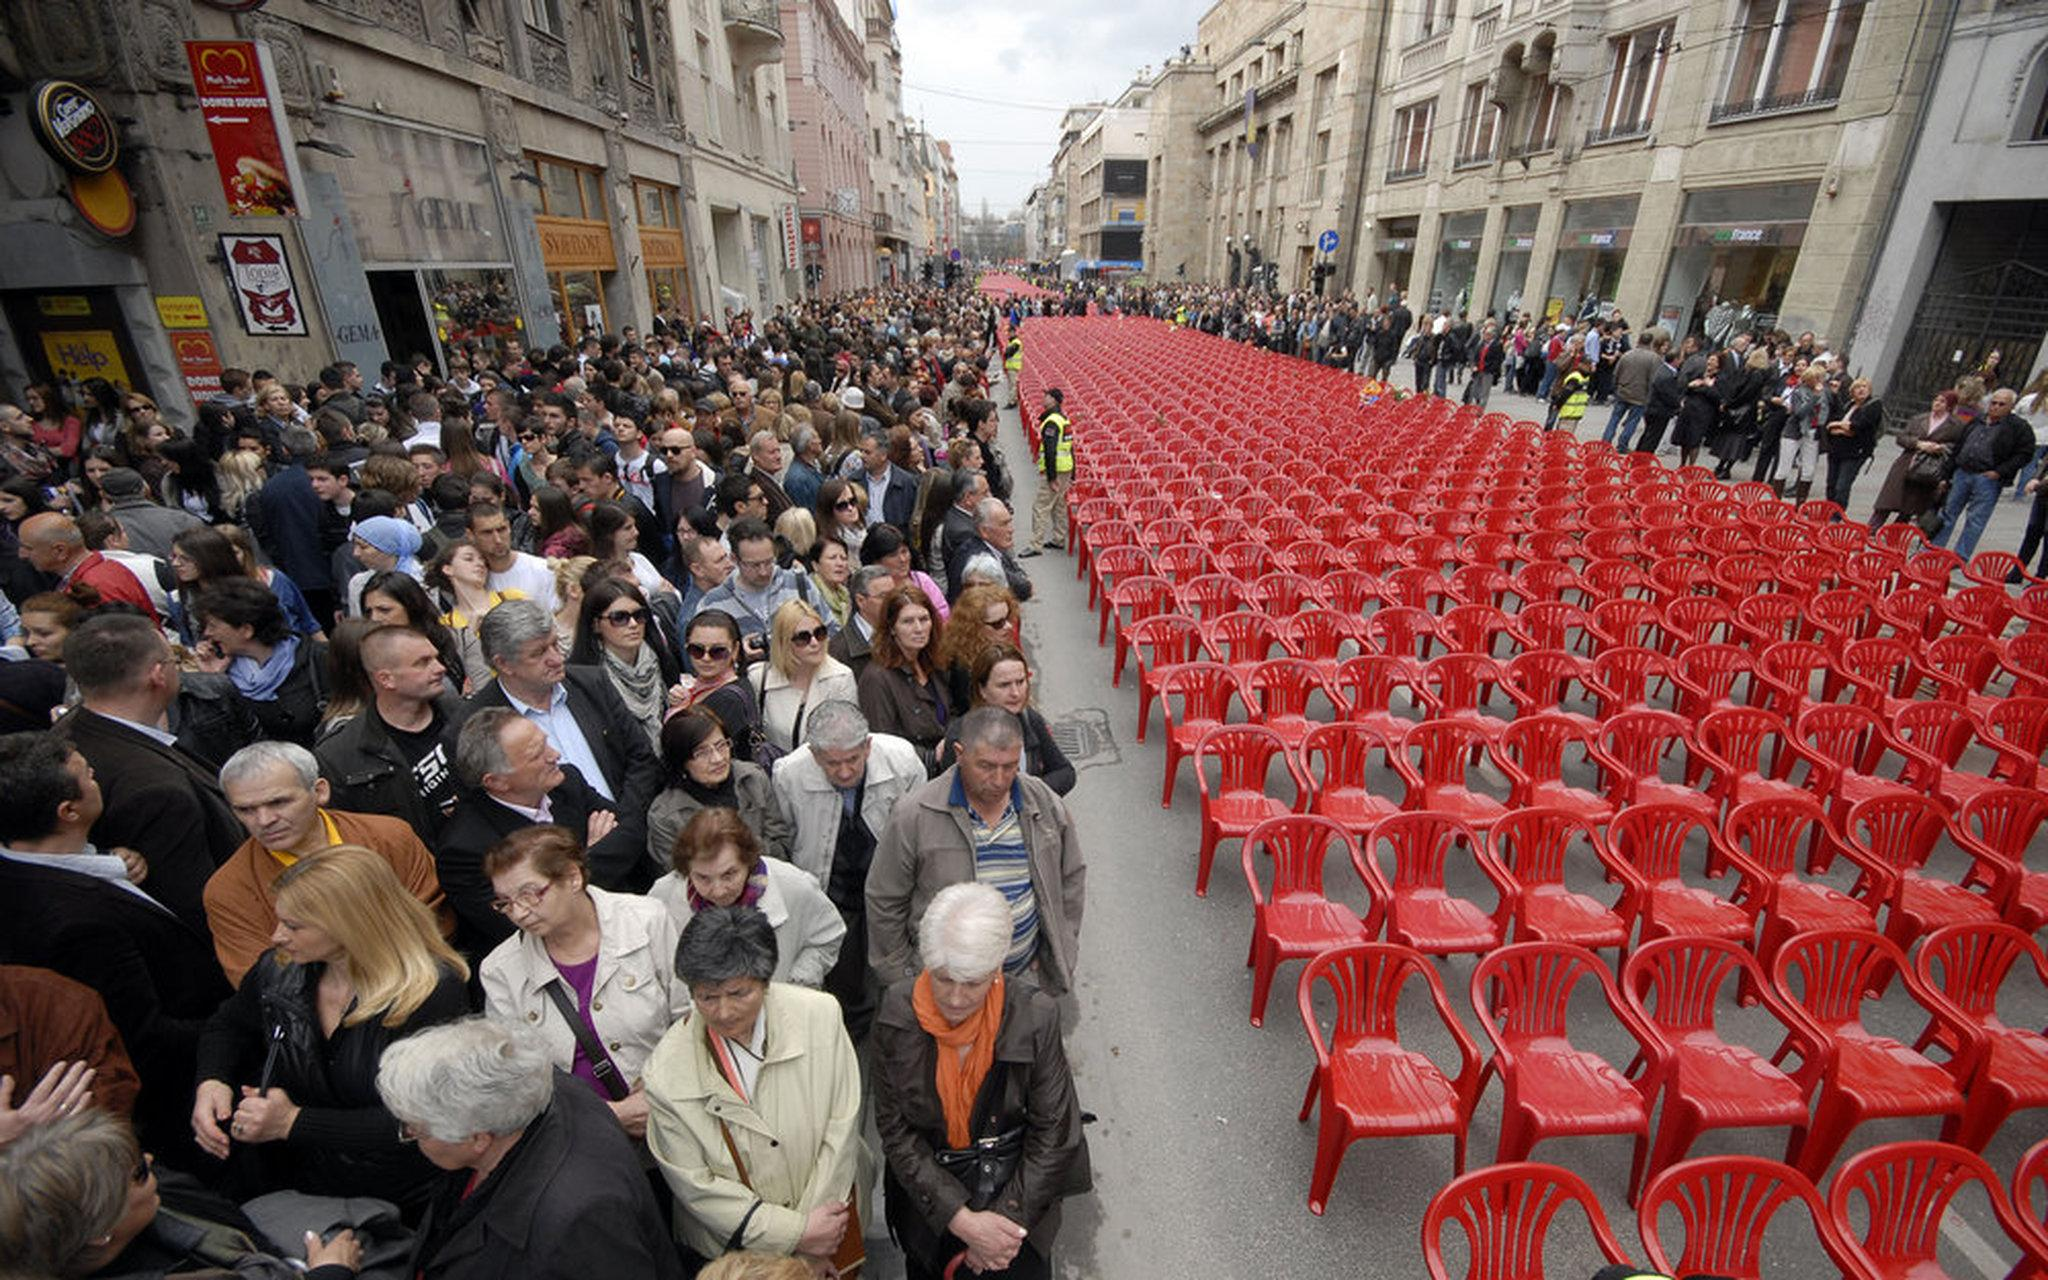 red chairs sarajevo best back massager for chair peace justice elude rape victims of bosnian war sdpb radio